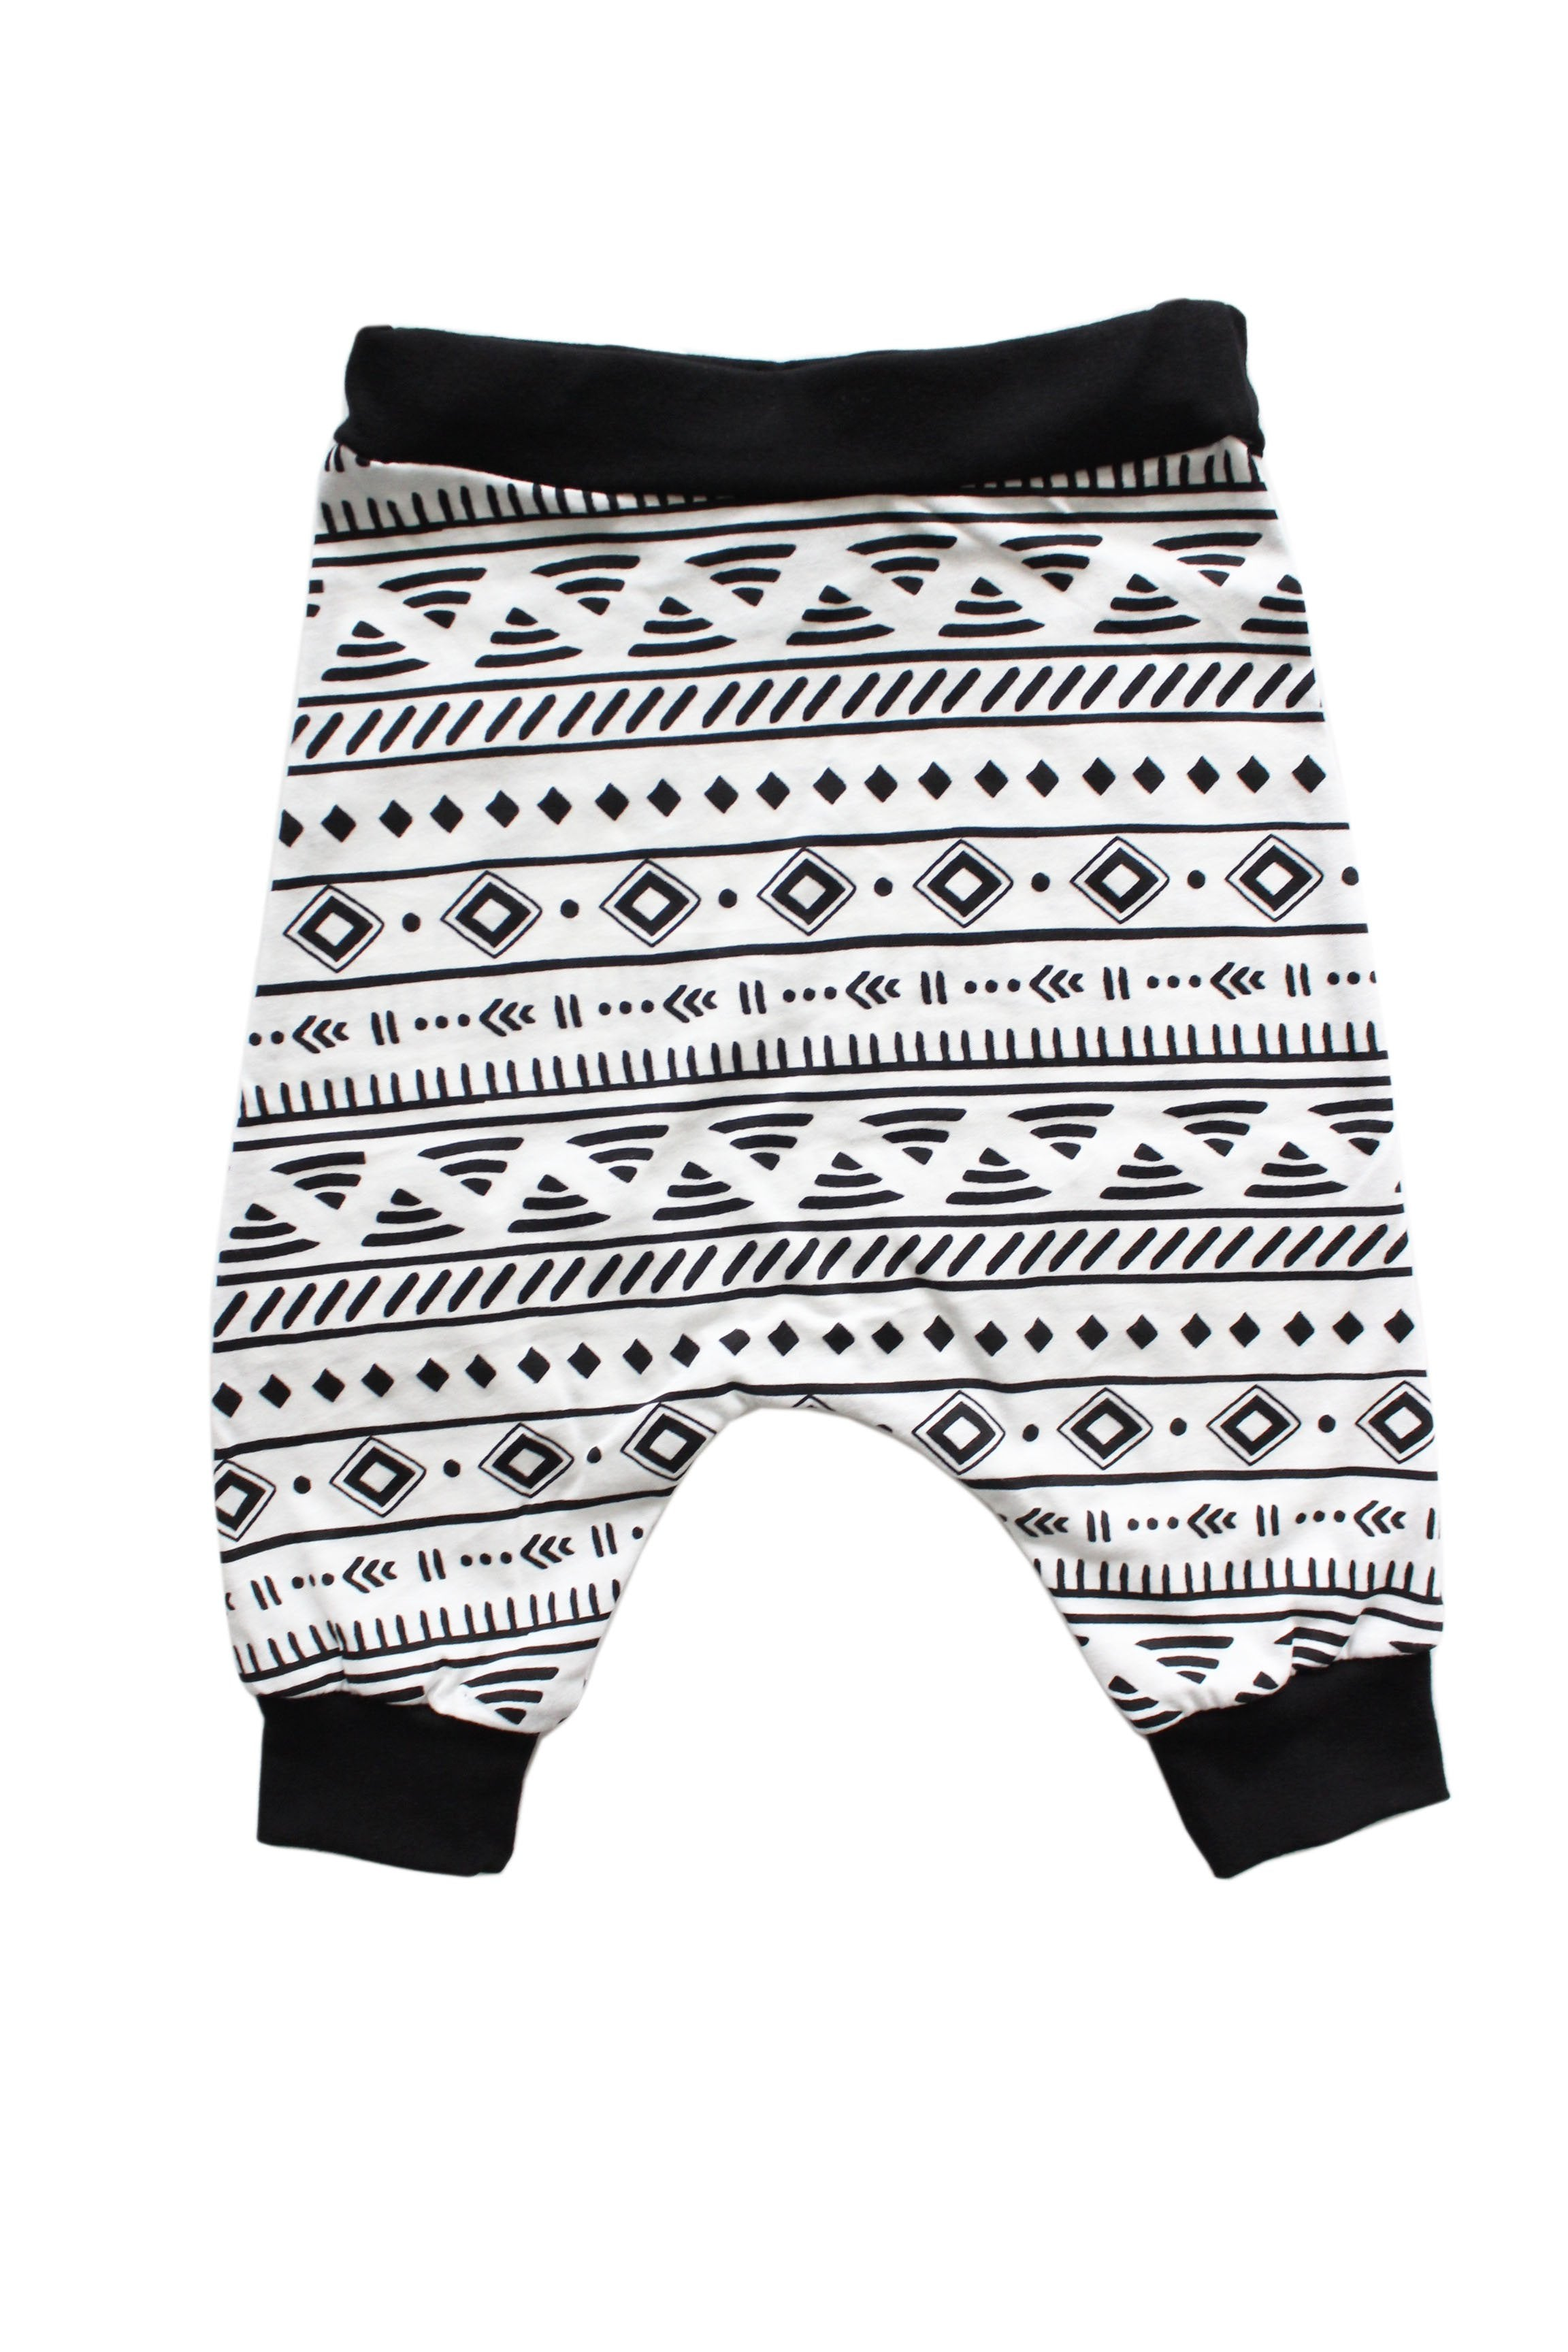 Raven Black Tribal Harem Shorts